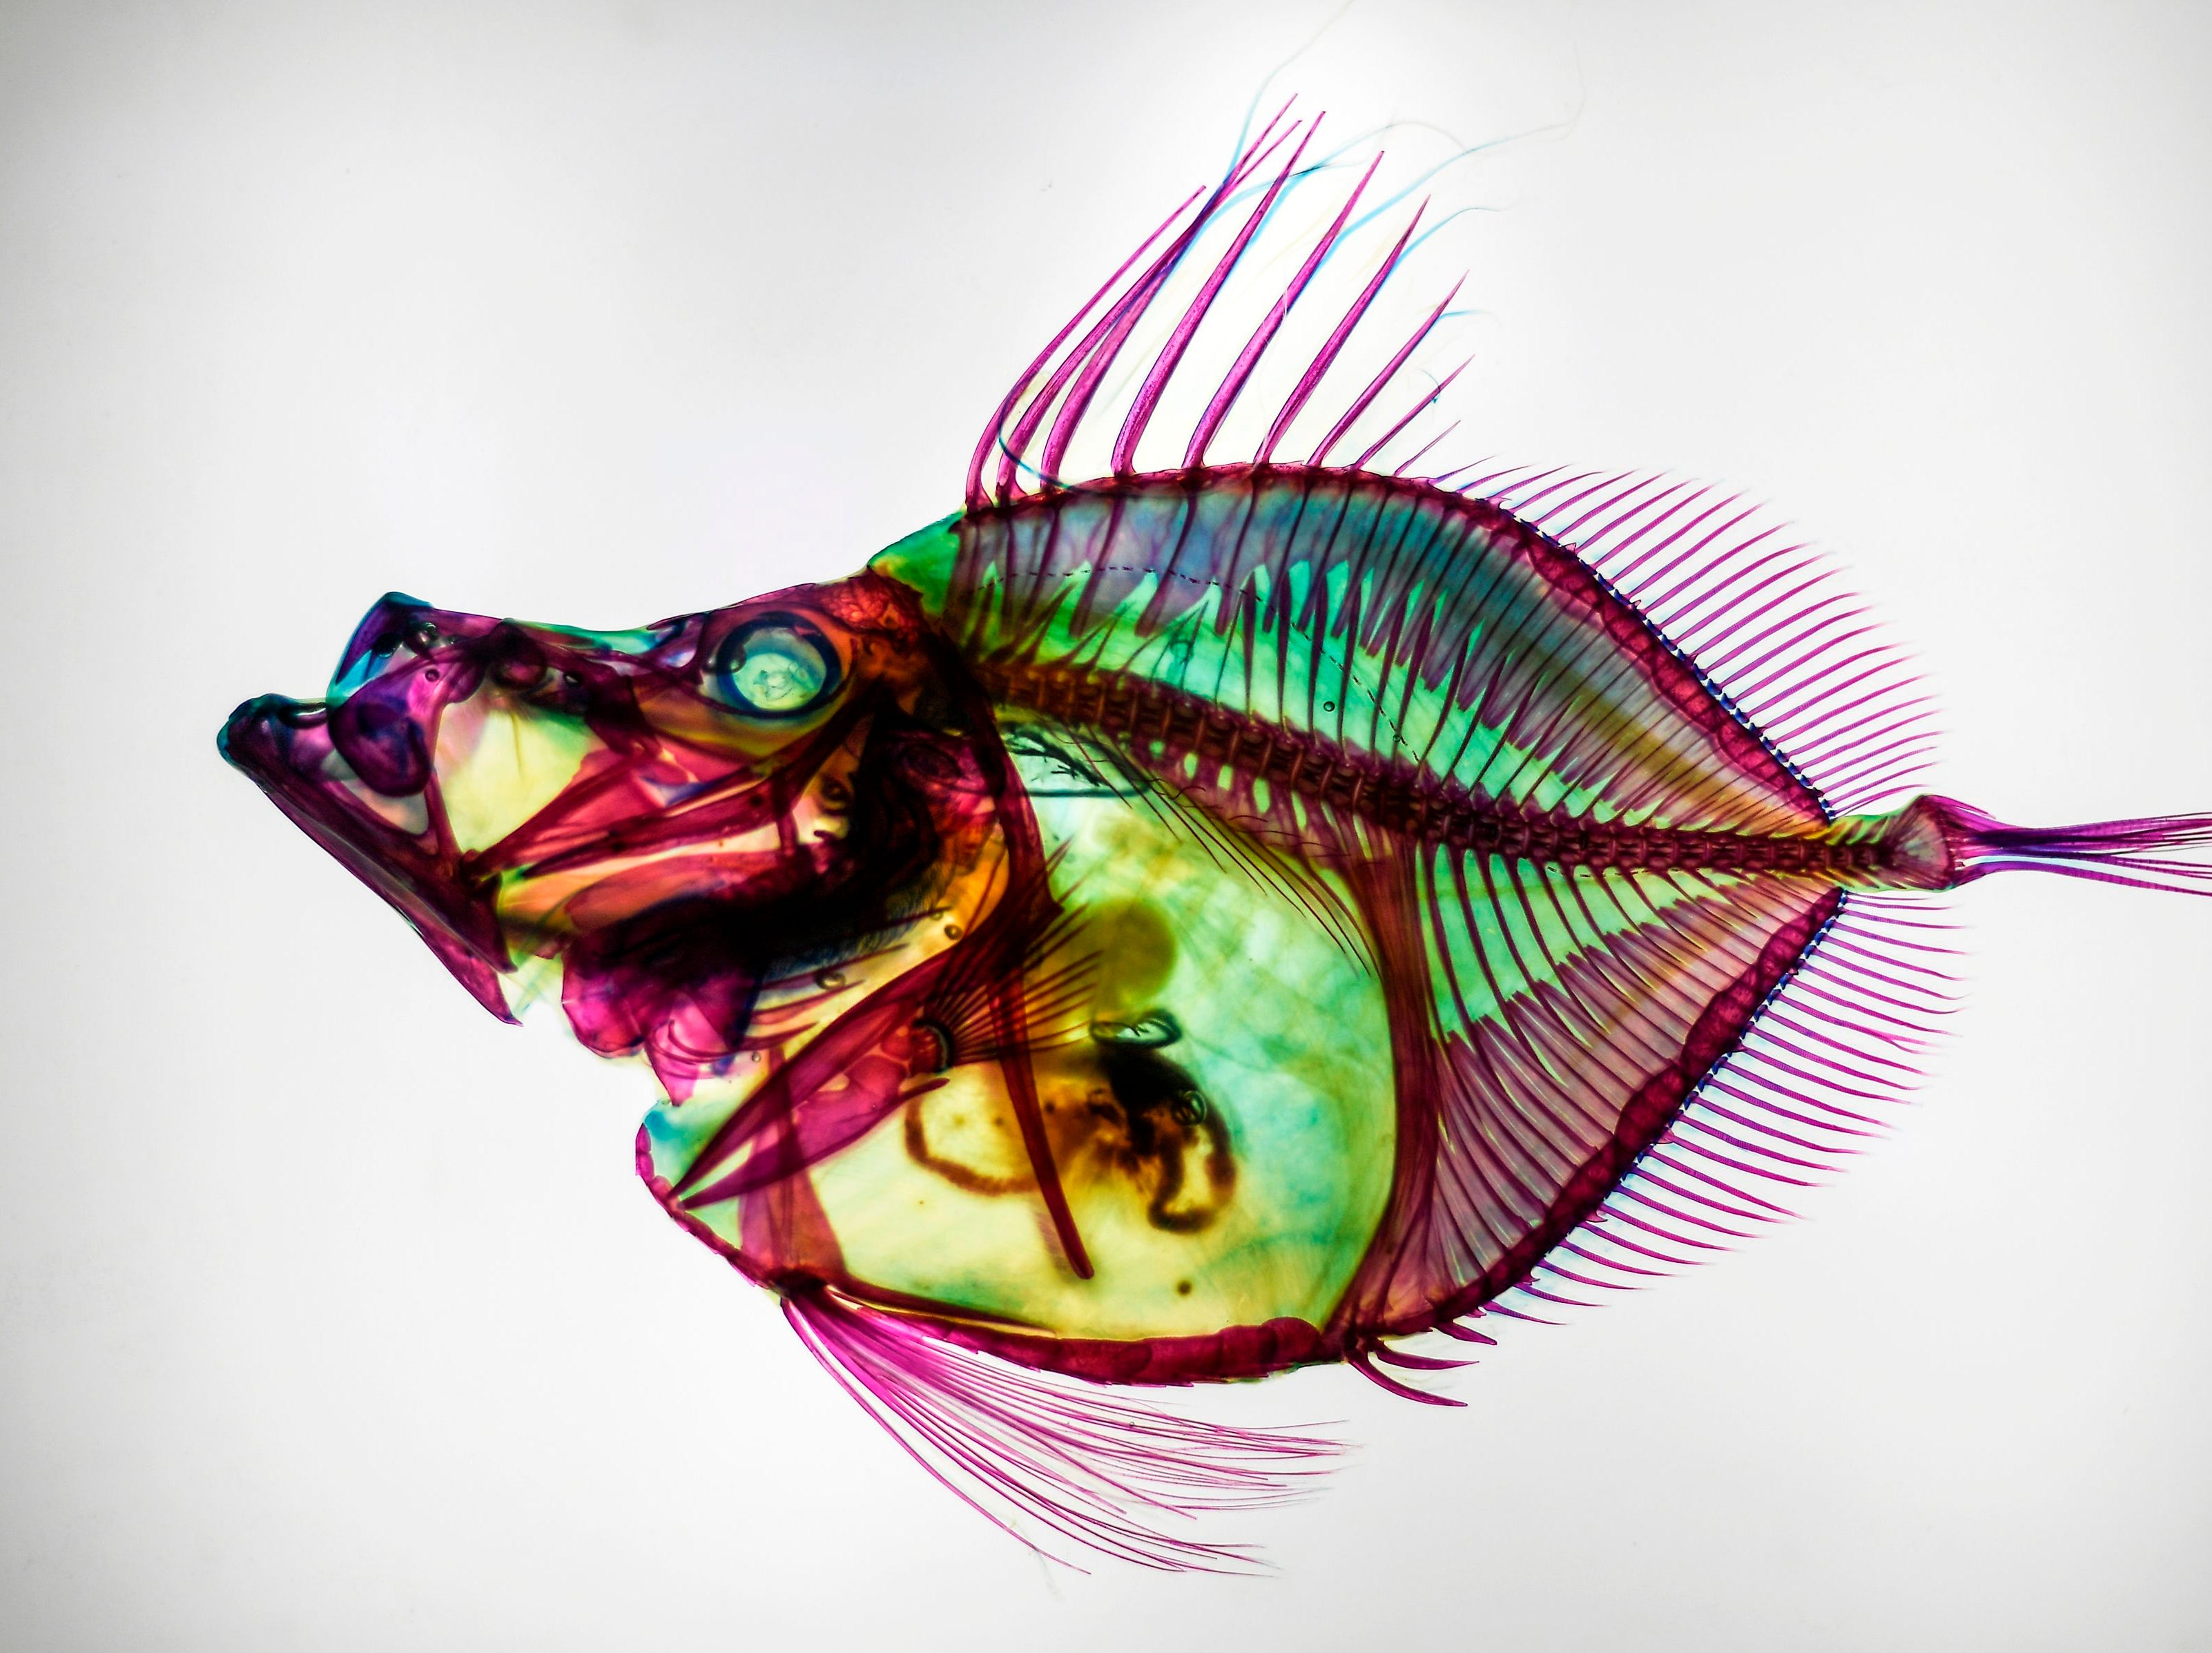 A discolored Zenopsis Nebulosa, or Mirror Dory, with muscles digested by the enzyme and their bones and cartilages colored by chemicals, is displayed during the Transparent Fish Exhibition at the Aquaria KLCC in Kuala Lumpur on Jan. 30, 2019.